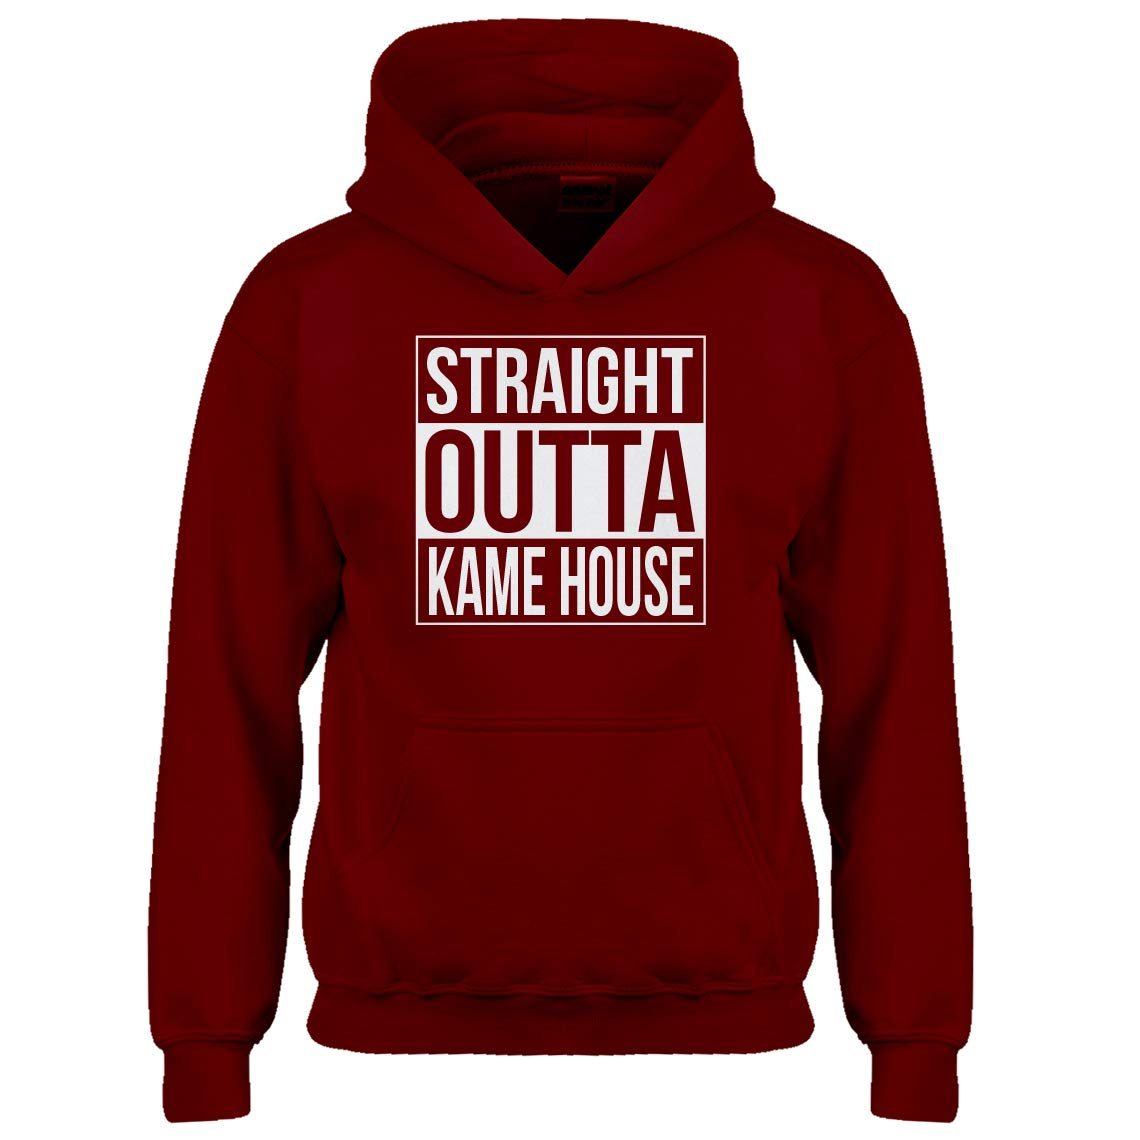 Indica Plateau Youth Straight Outta Kame House Kids Hoodie